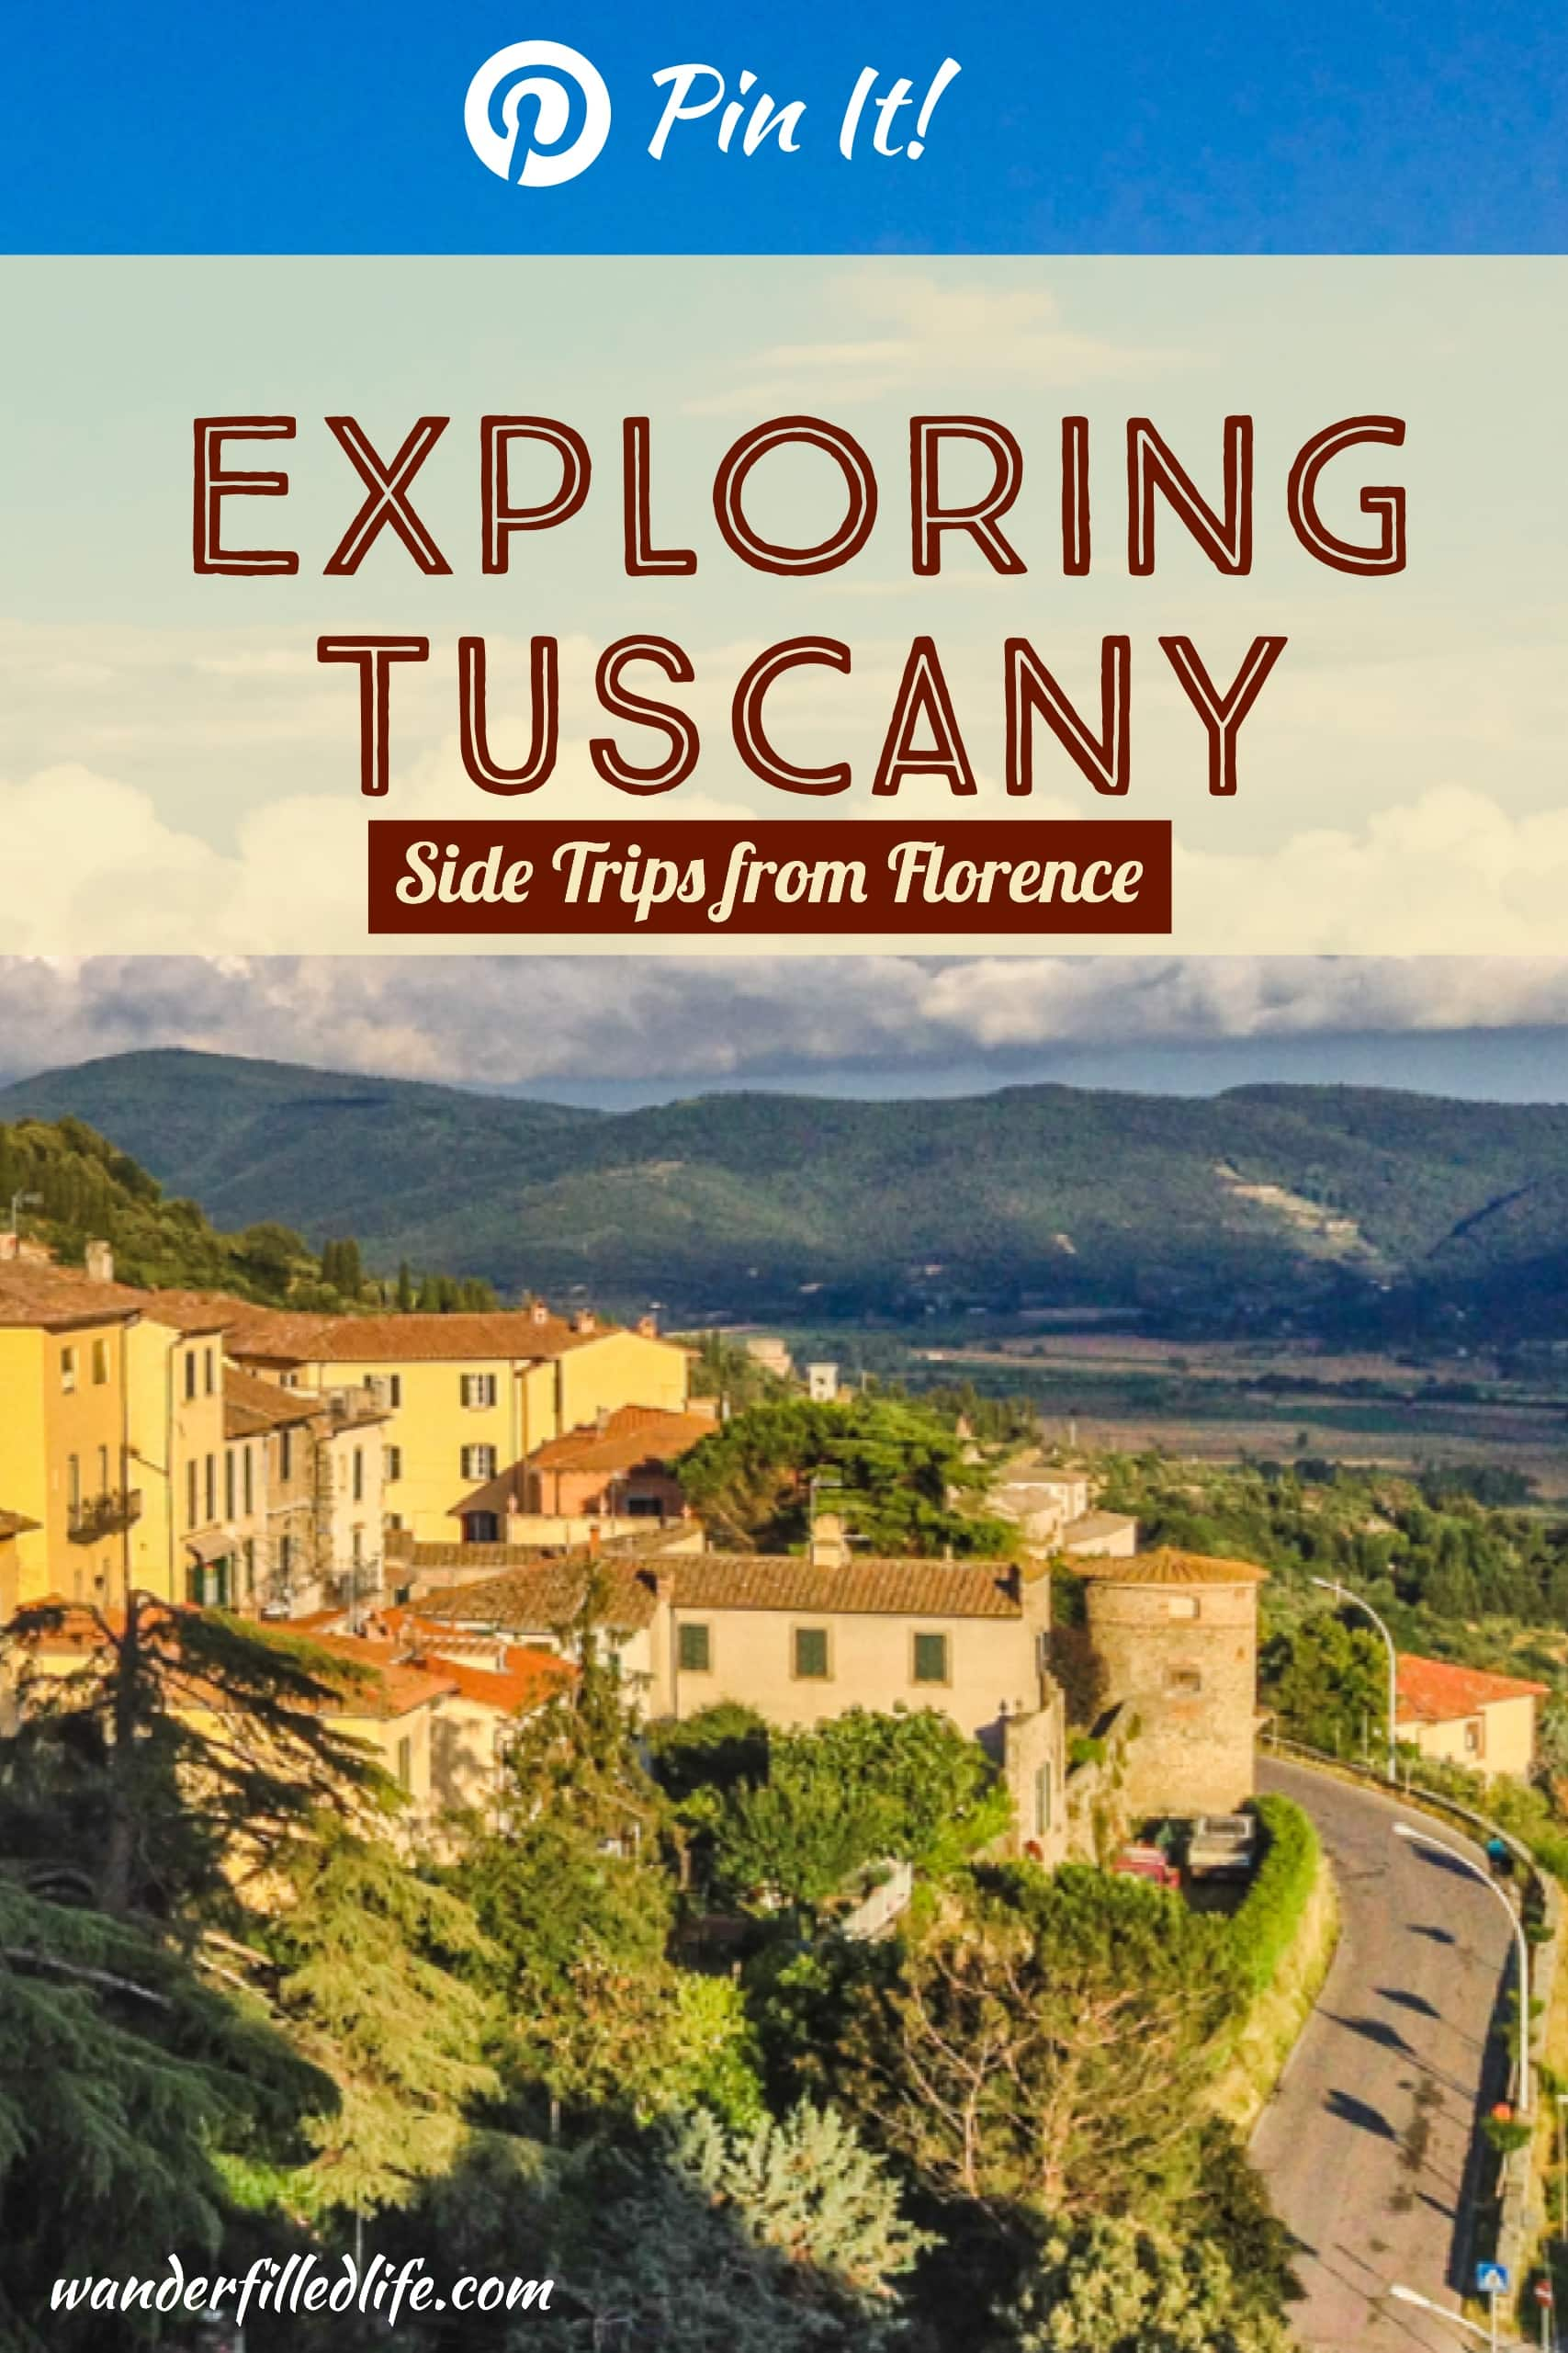 Some of the best sites in Italy may be in the big cities, but the charm is often found in the small towns. Here, we explore several small towns in Tuscany. Each of these towns can be visited as a day trip or a one- or two-night stay on your way to or from Florence.